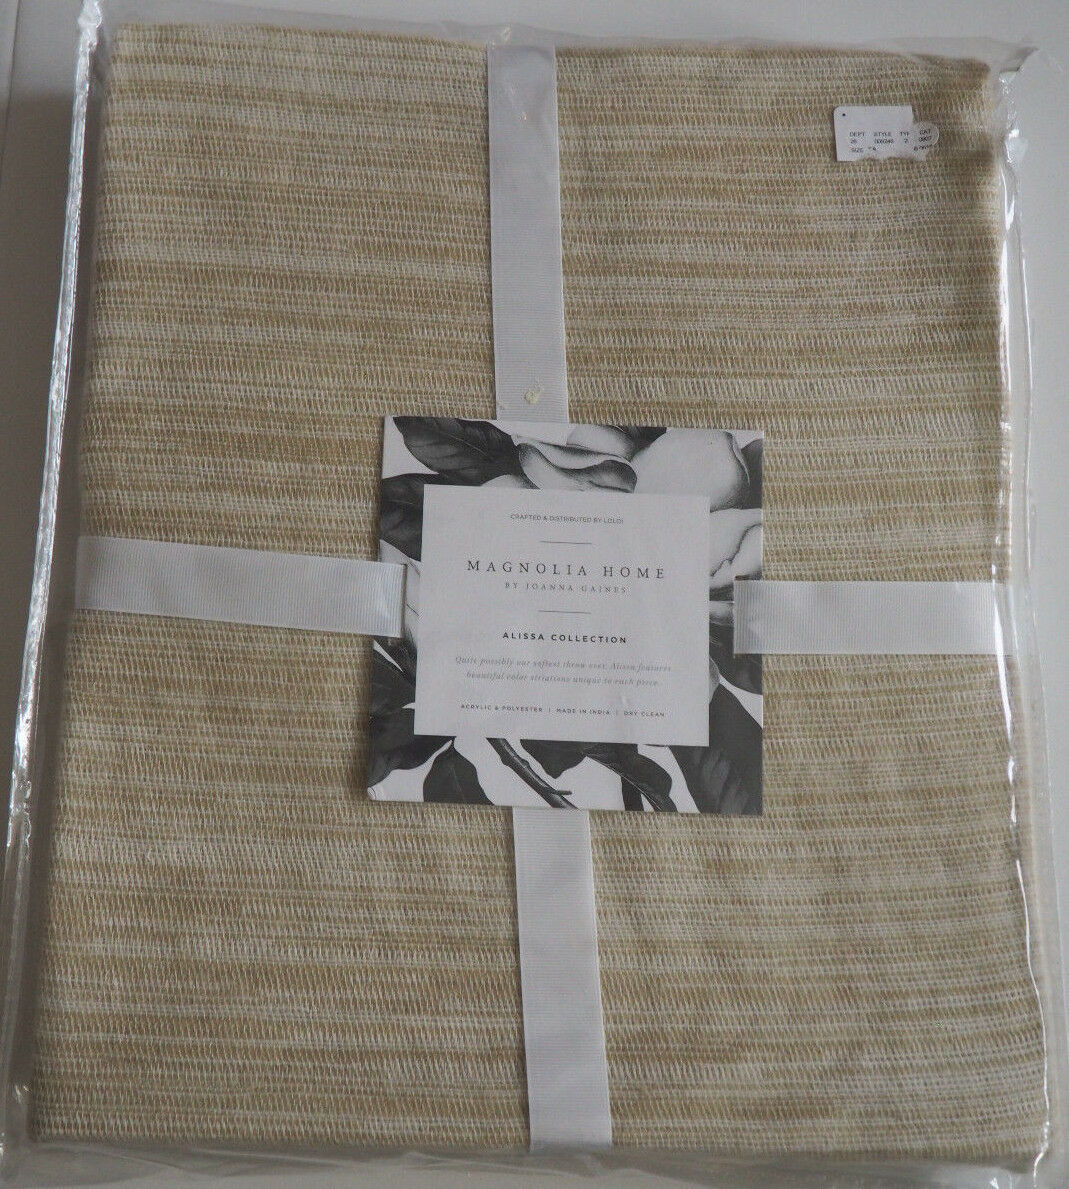 MAGNOLIA HOME Joanna Gaines ALISSA Collect Throw - Ivory & Beige 4'2  x 5'